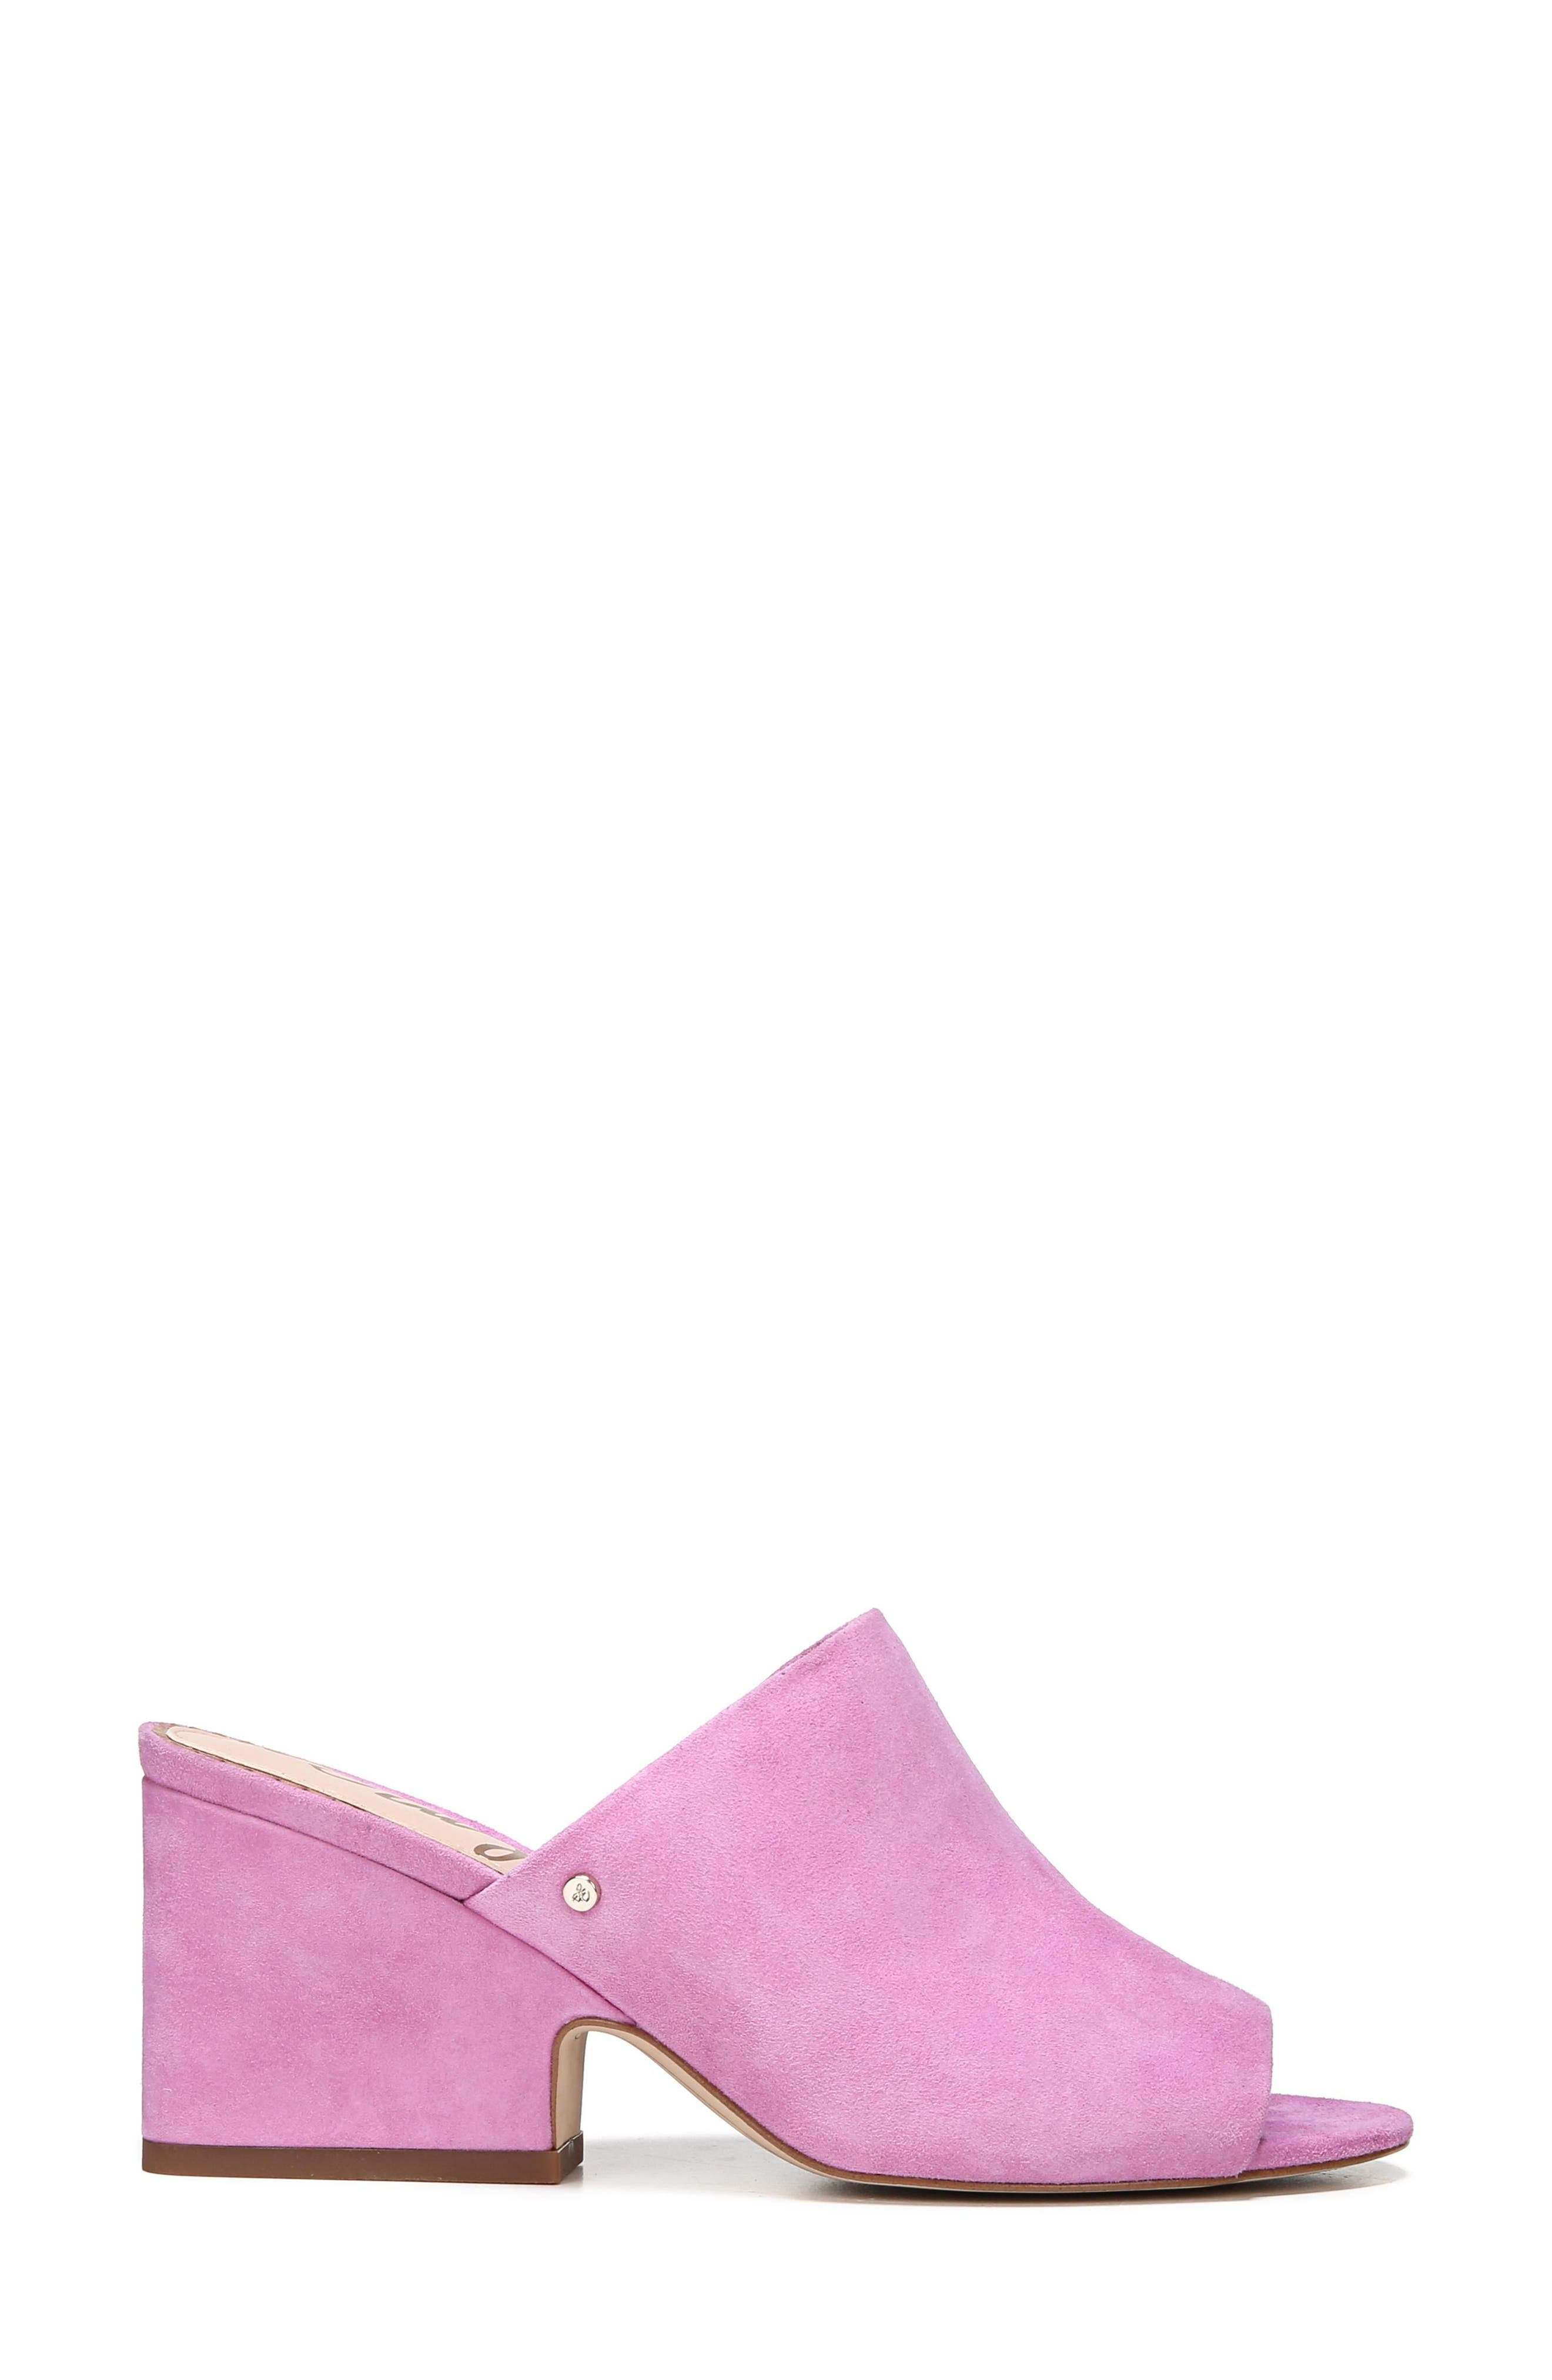 Rheta Mule,                             Alternate thumbnail 3, color,                             Fiji Pink Suede